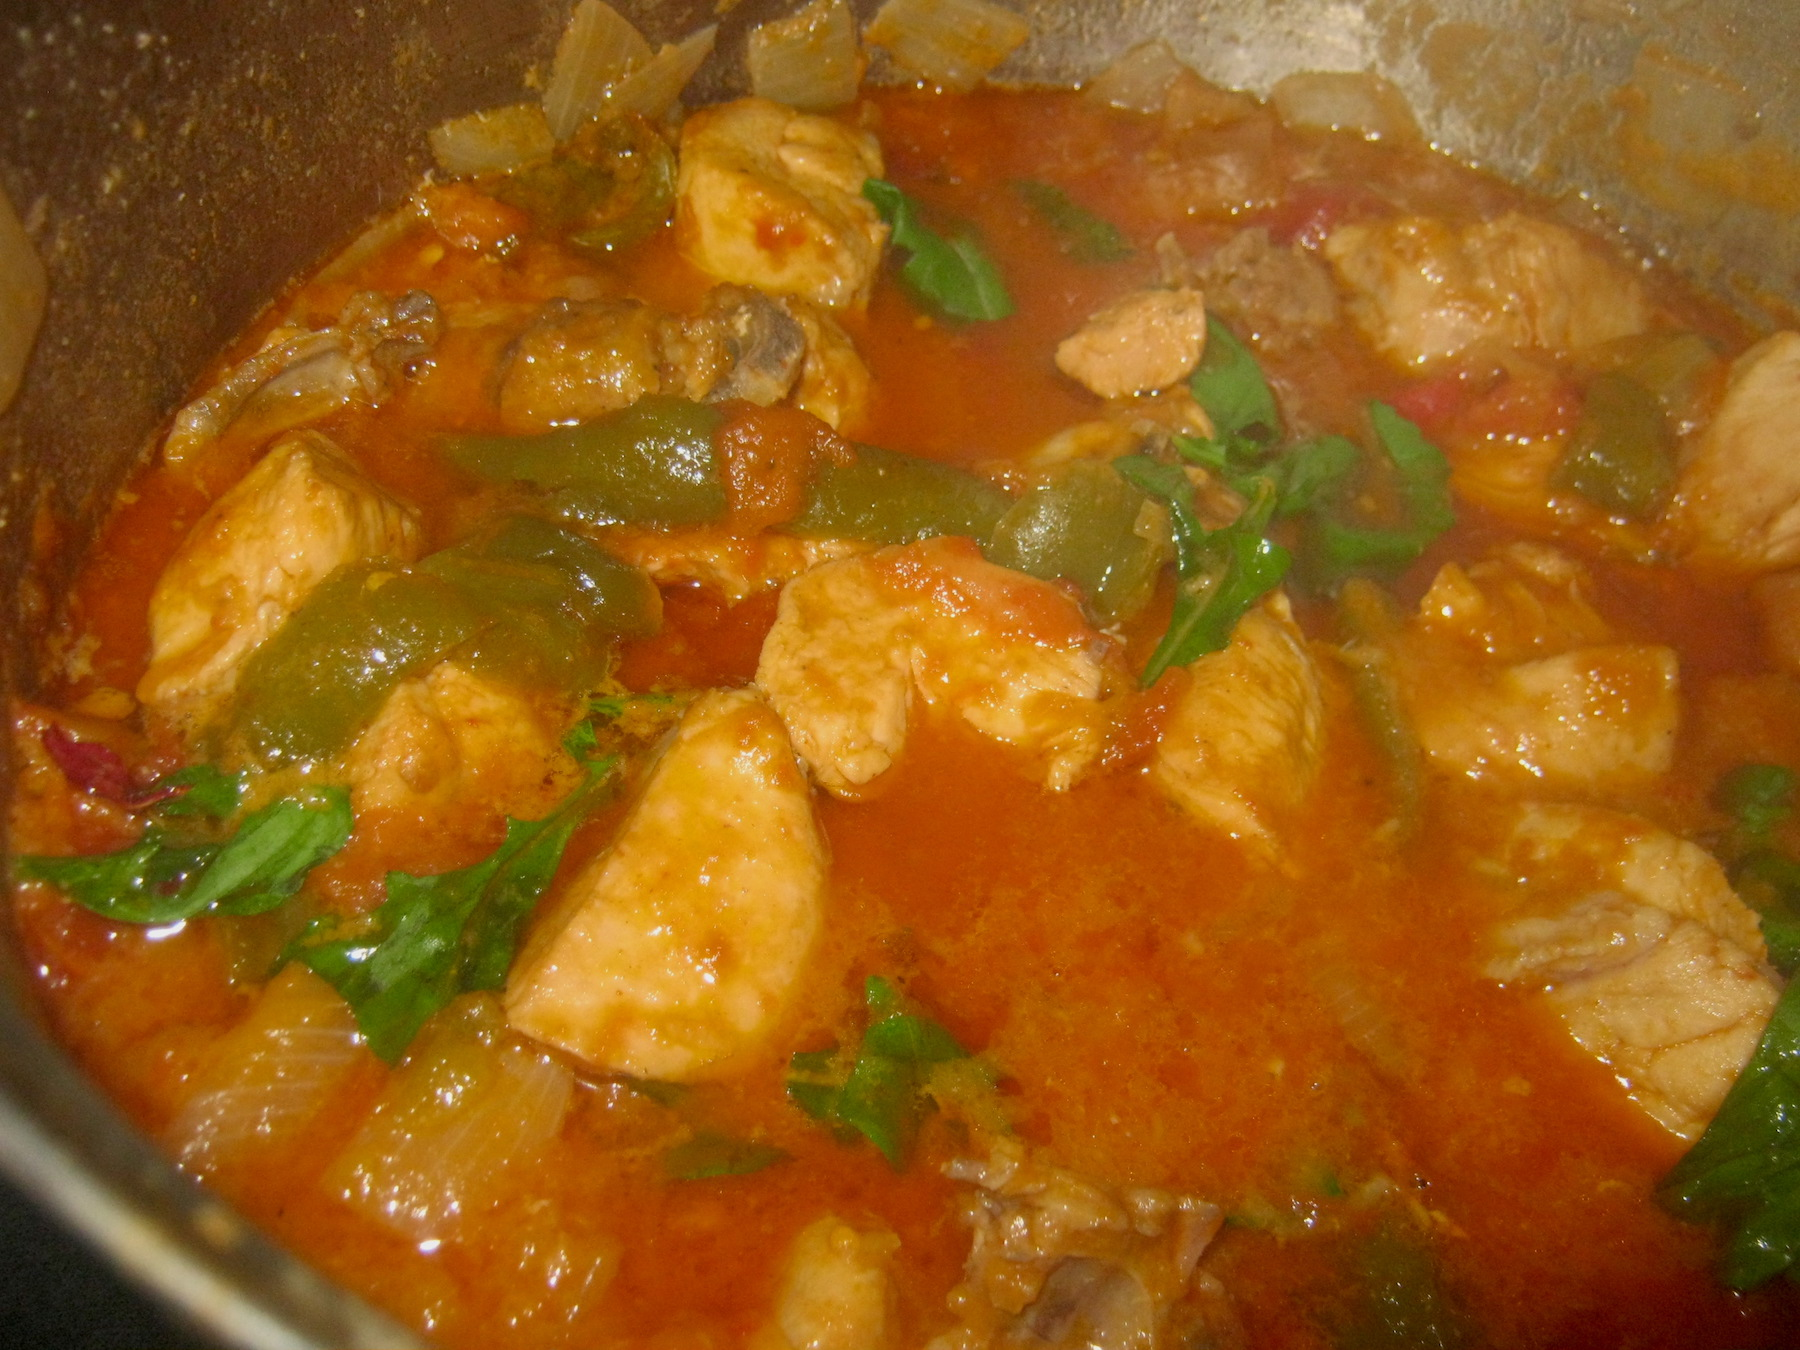 Chicken Stew with Sweet peppers in a pot